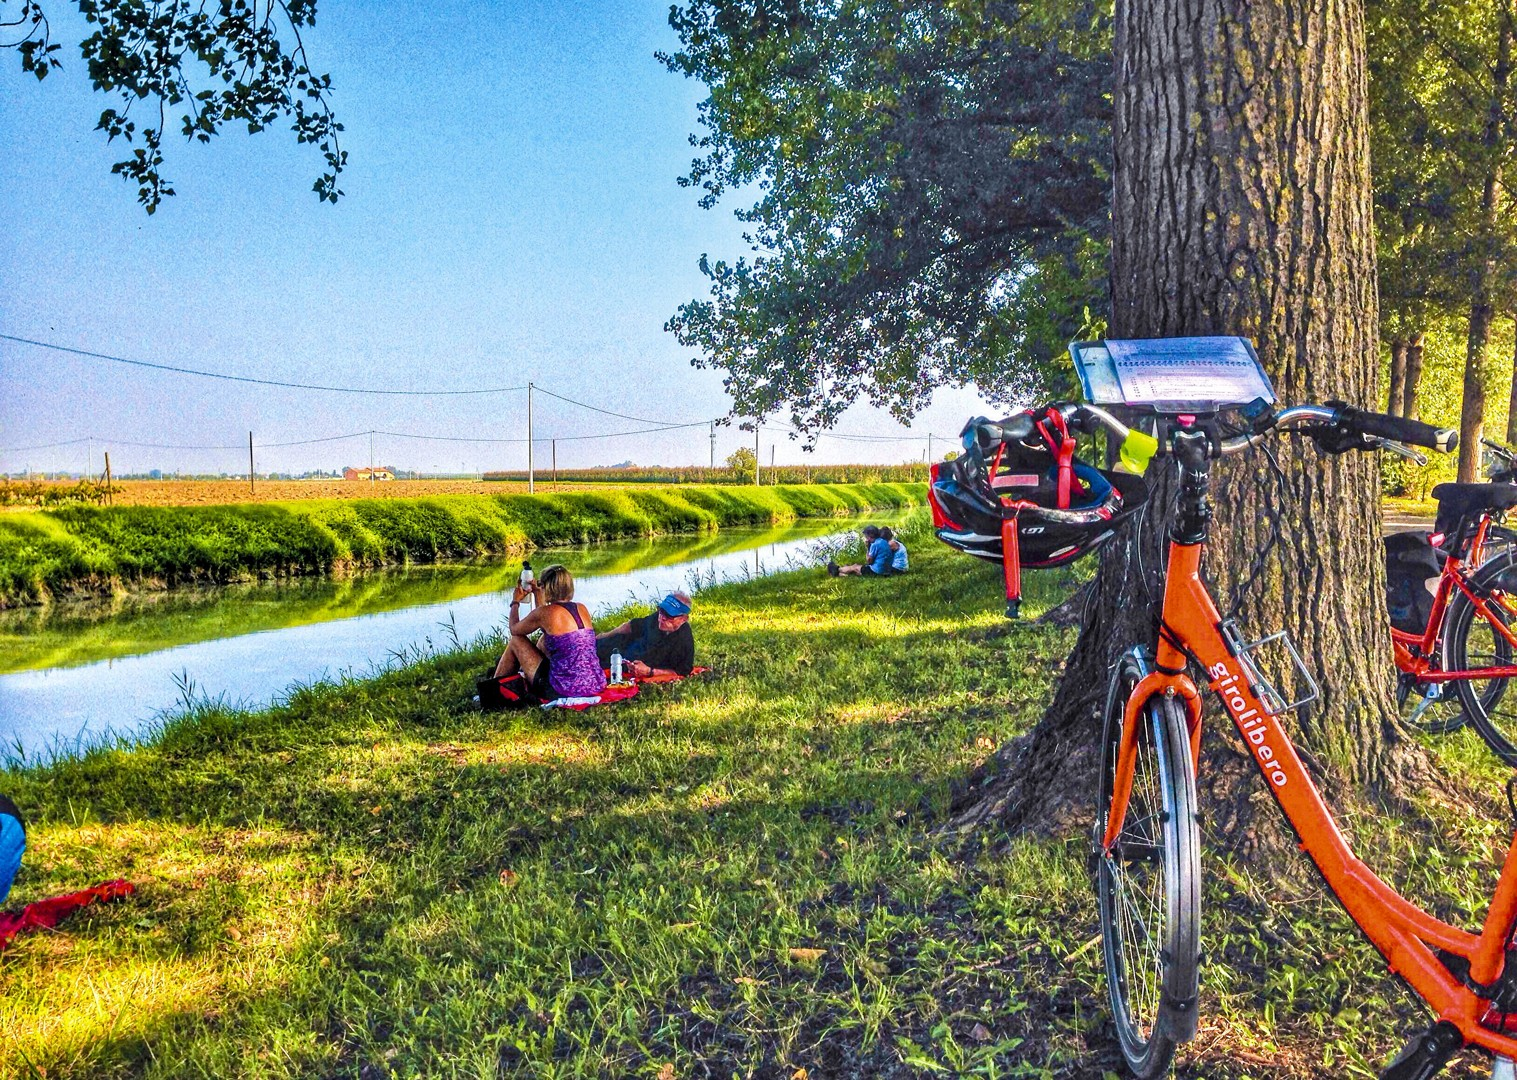 cycle-the-river-po-italy-bb-holiday-leisure-self-guided.jpg - Italy - Venetian Waterways (Mantova to Venice) - Bike and Barge Holiday - Leisure Cycling